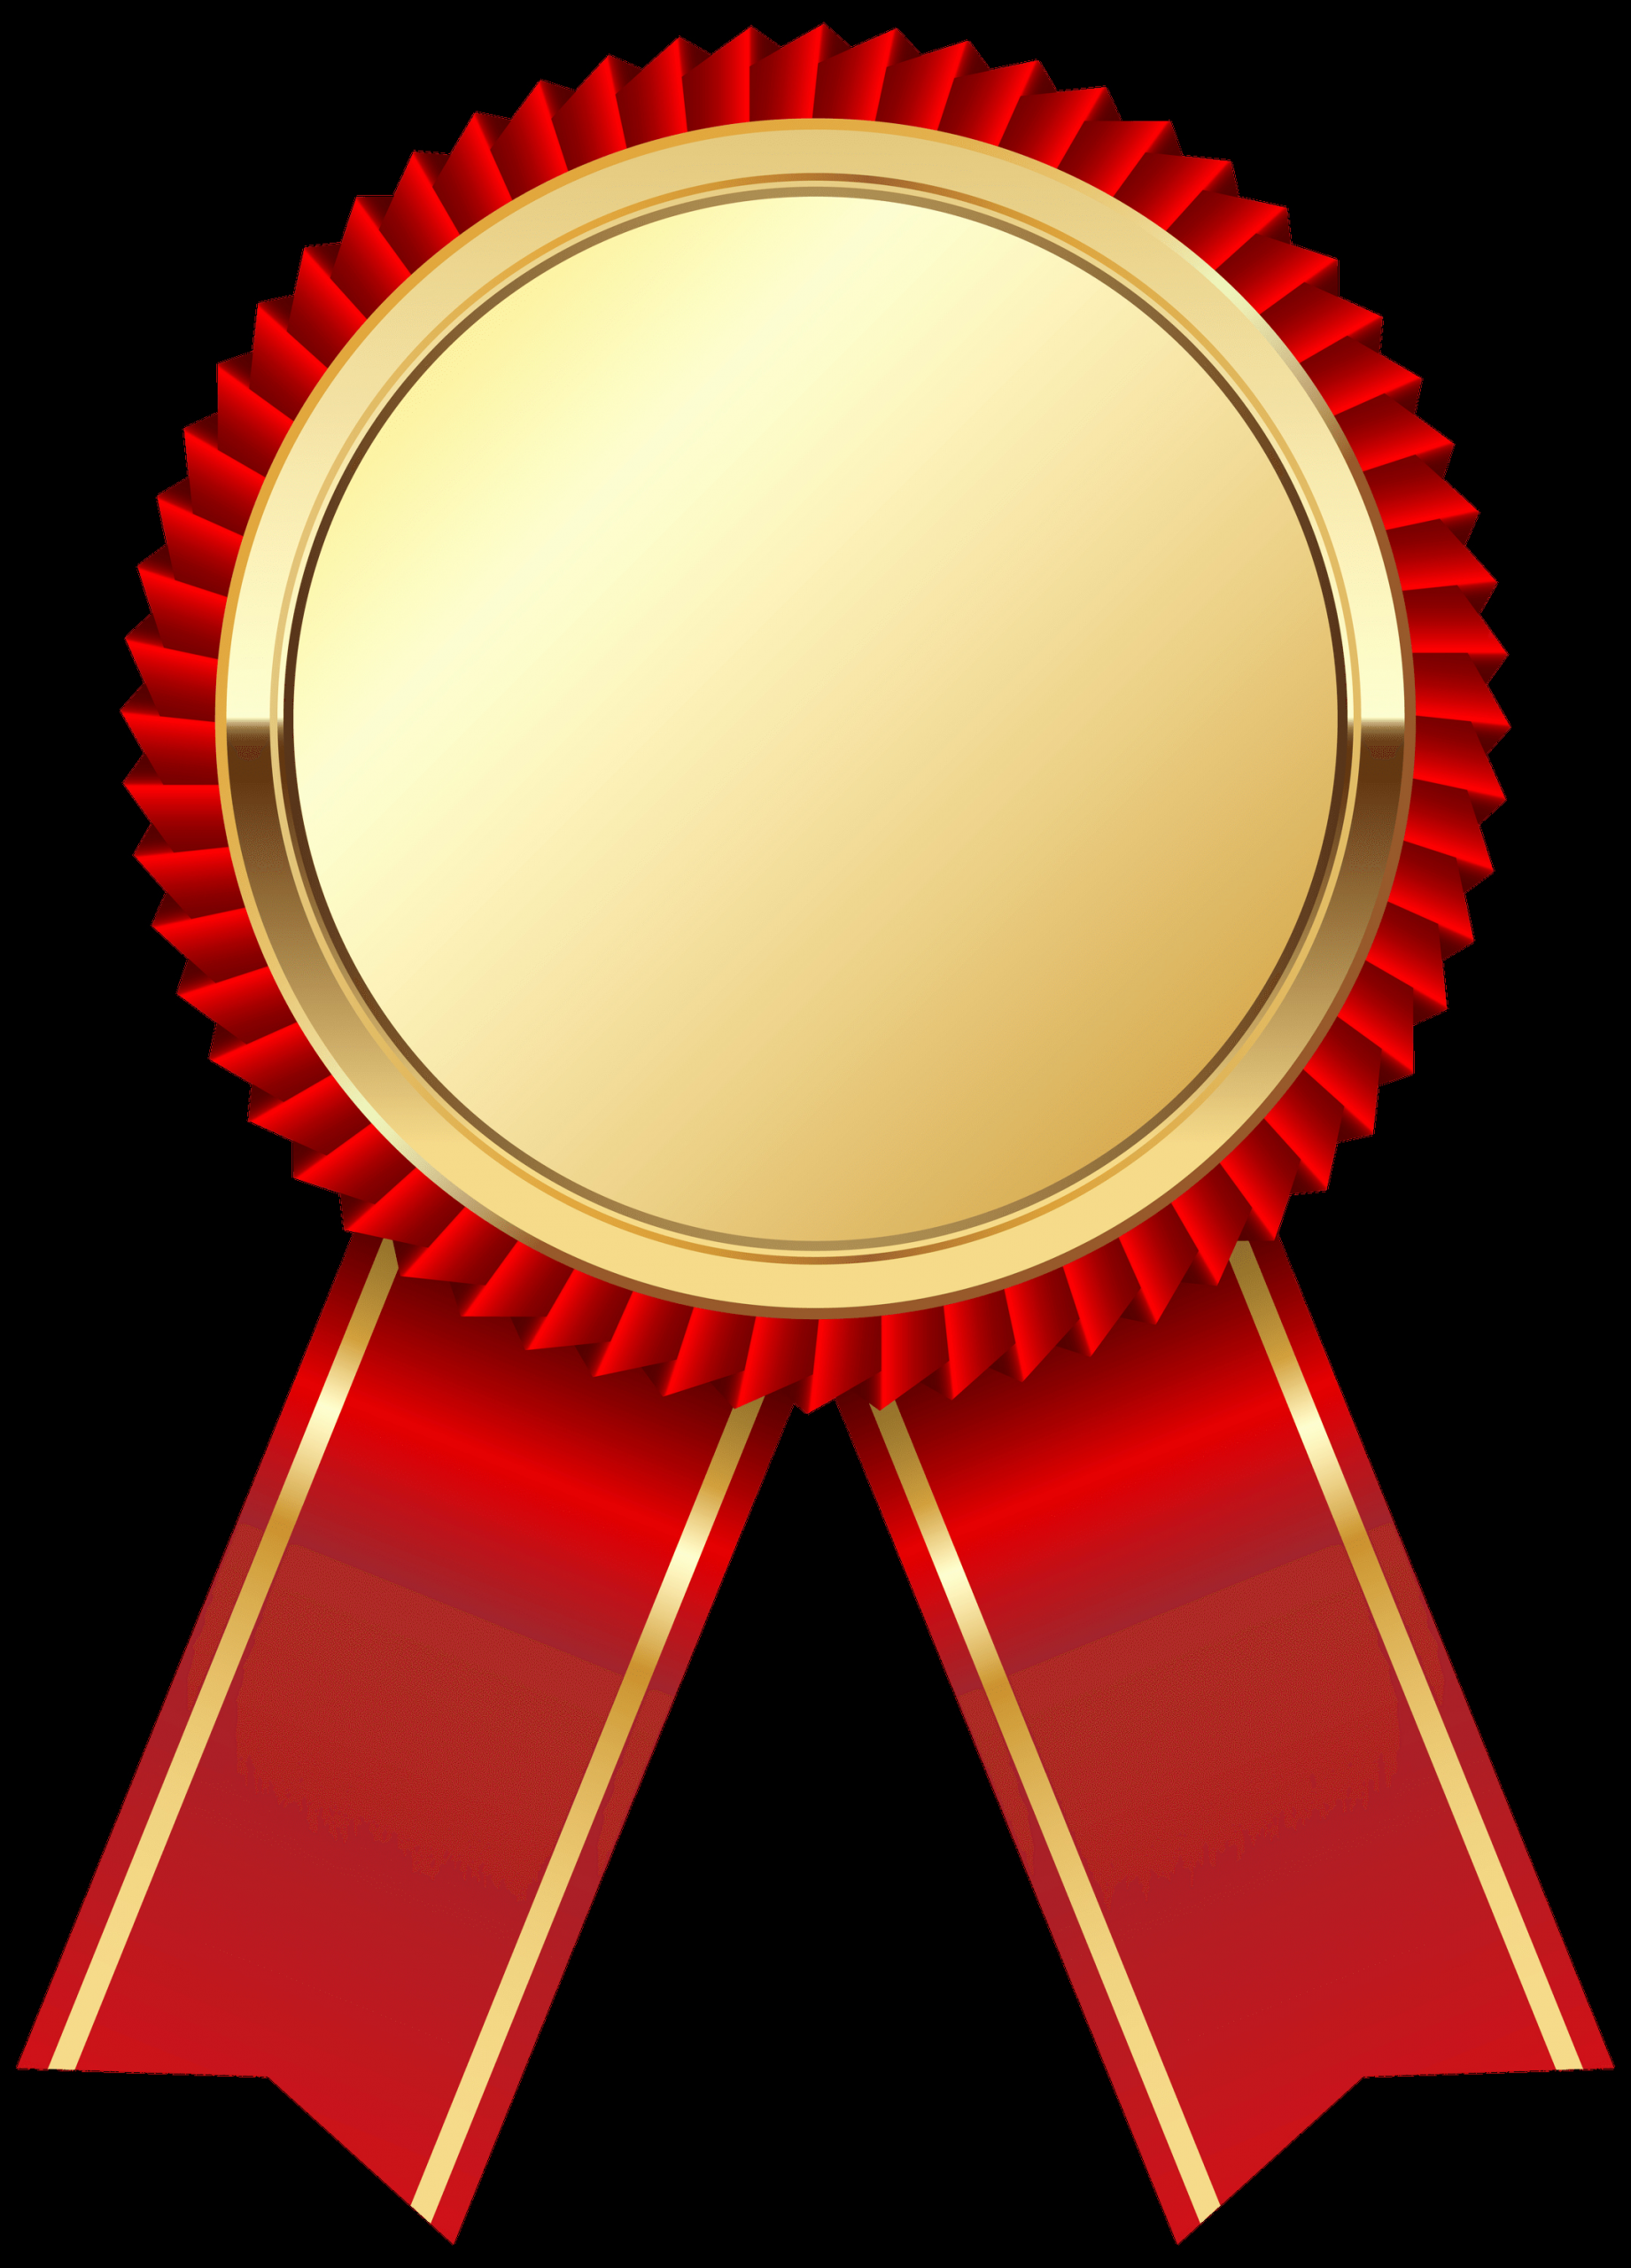 2nd Place Ribbon Png Elegant Gold Medal Ribbon Transparent Png Stickpng